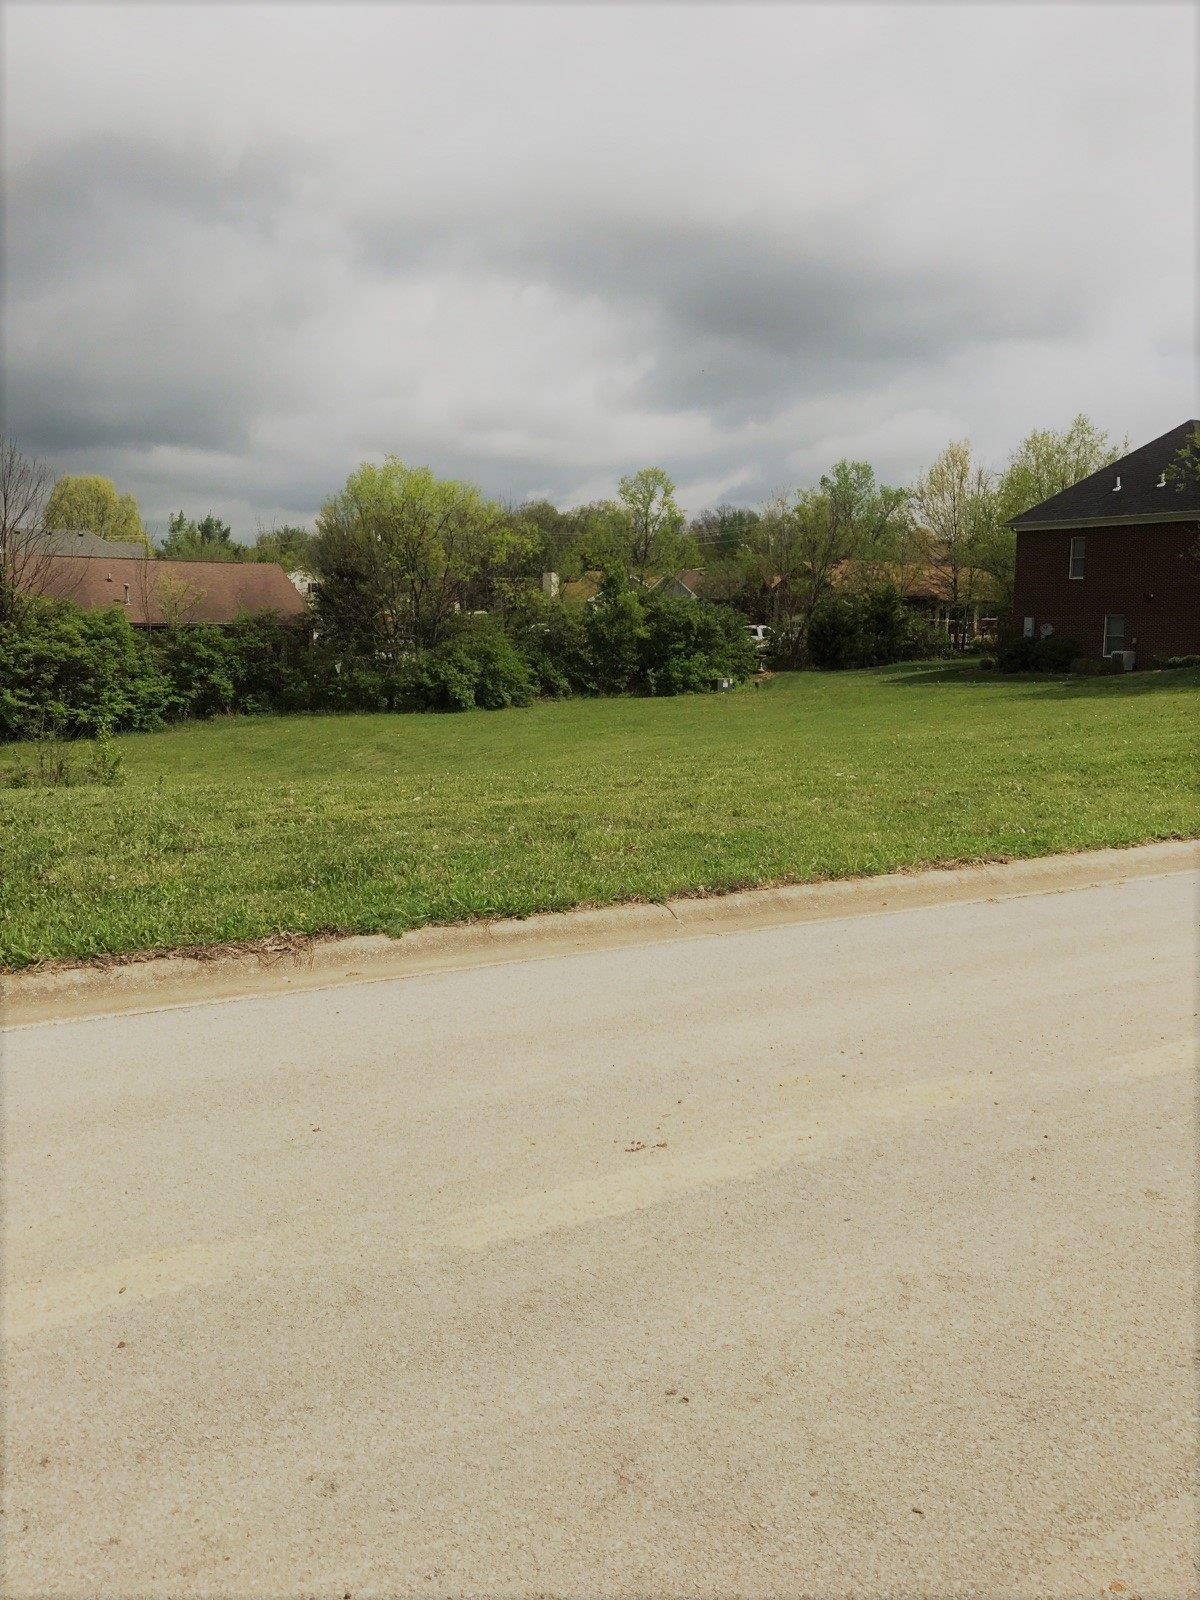 Property for sale at 301%20Twin%20Pines%20Ln%20Frankfort,%20KY%2040601